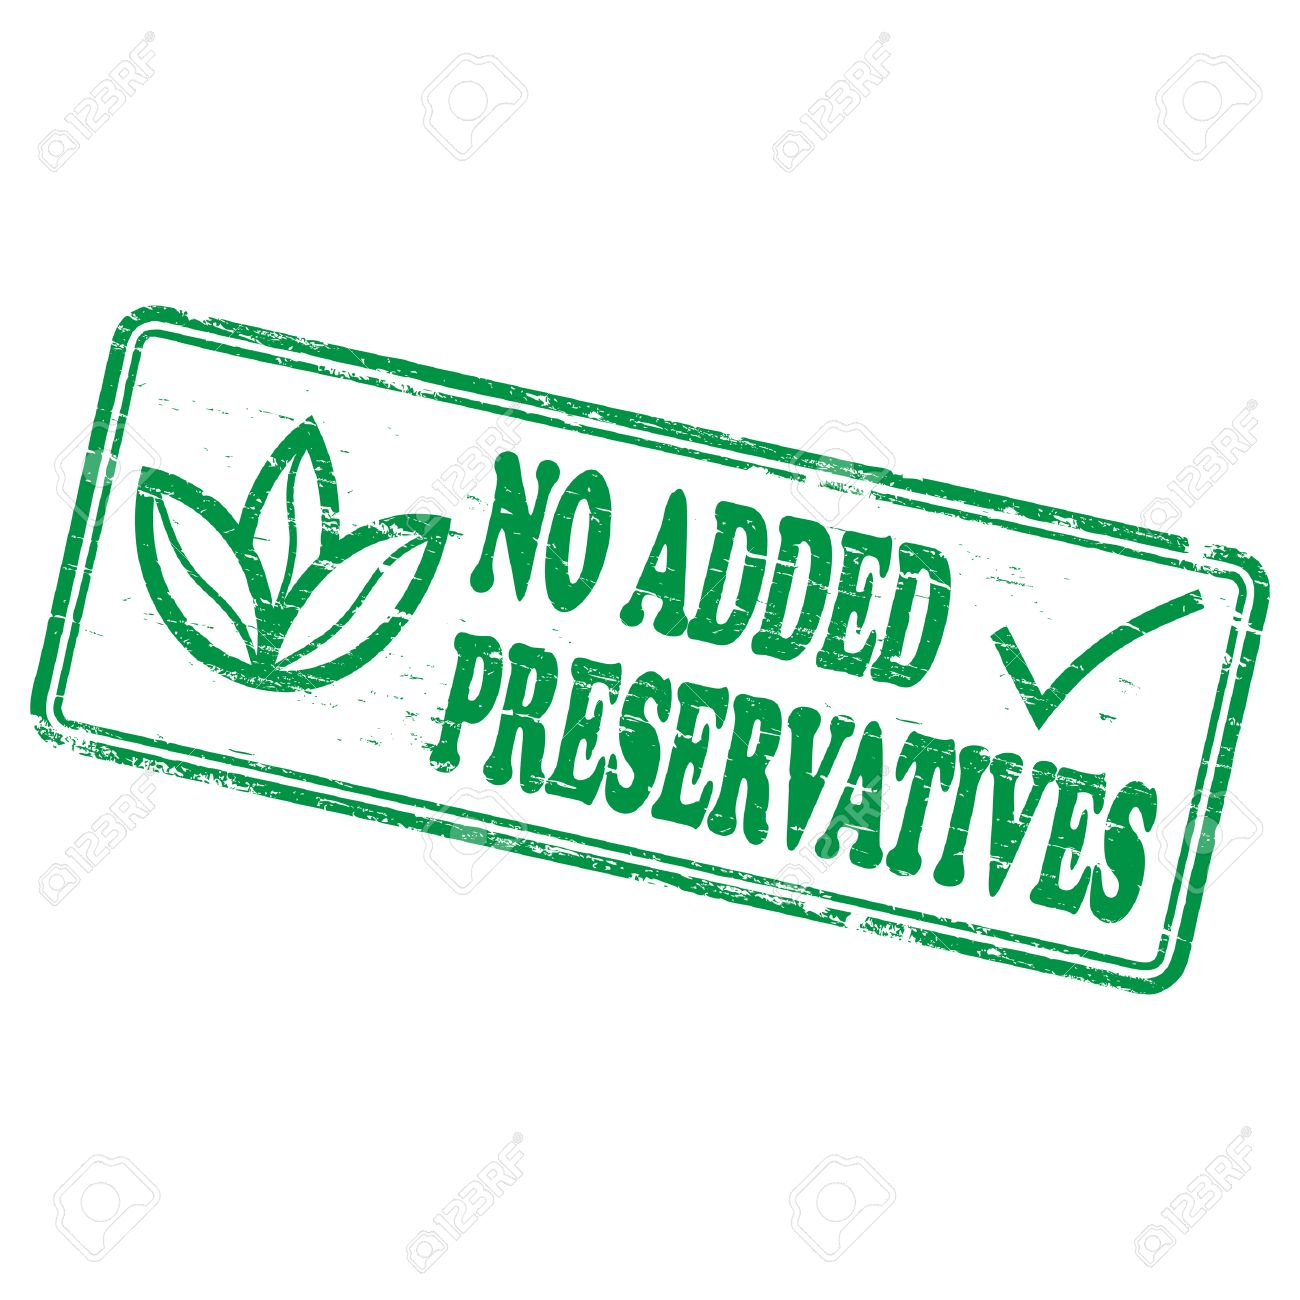 NO ADDED PRESERVATIVES Rubber Stamp Stock Vector - 8774800